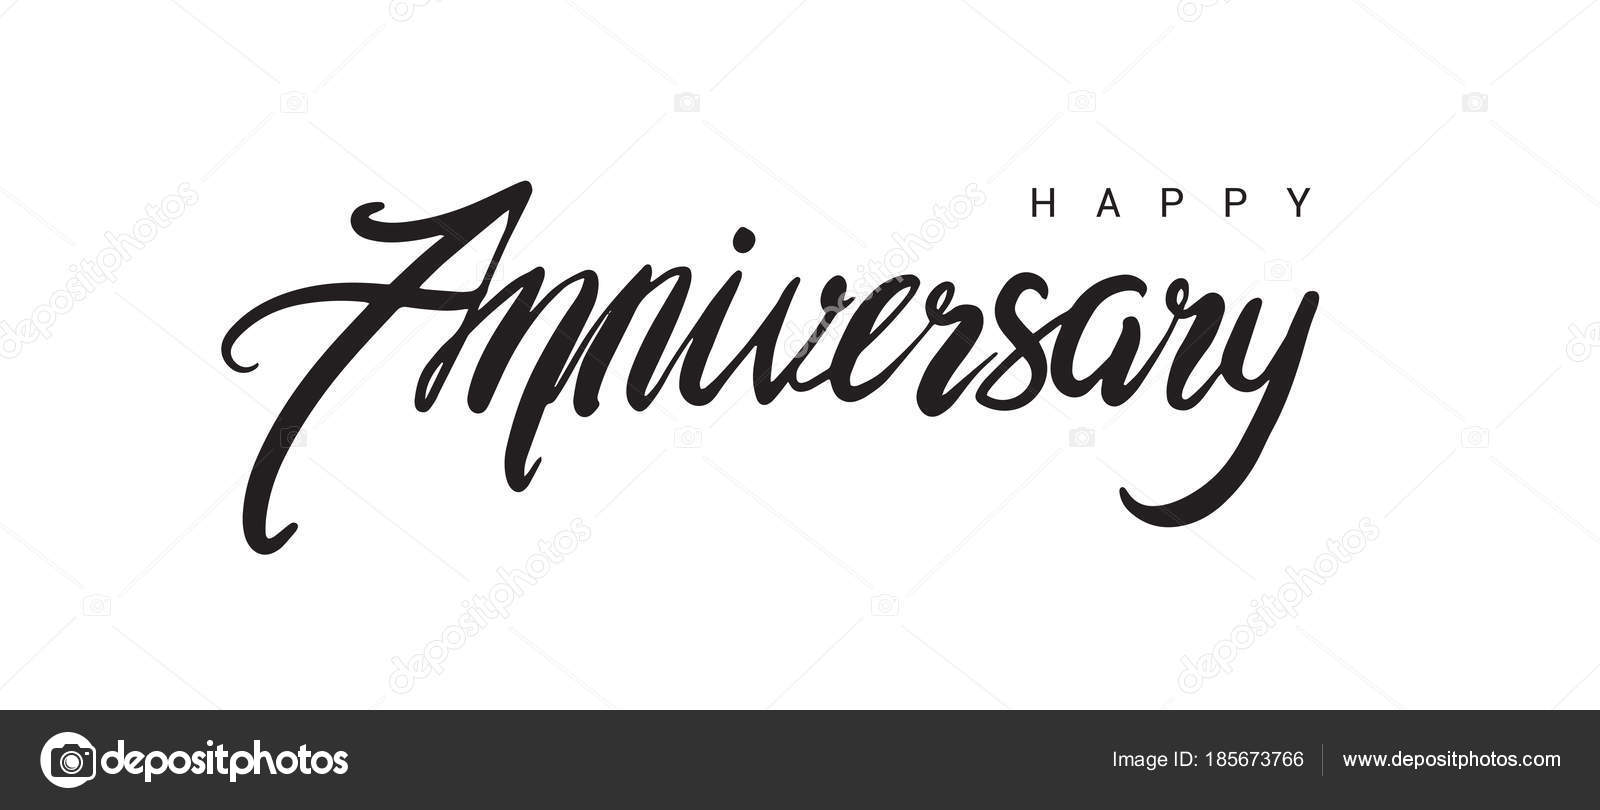 Banner Feliz Aniversario: Happy Anniversary Lettering Text Banner Black Color Vector